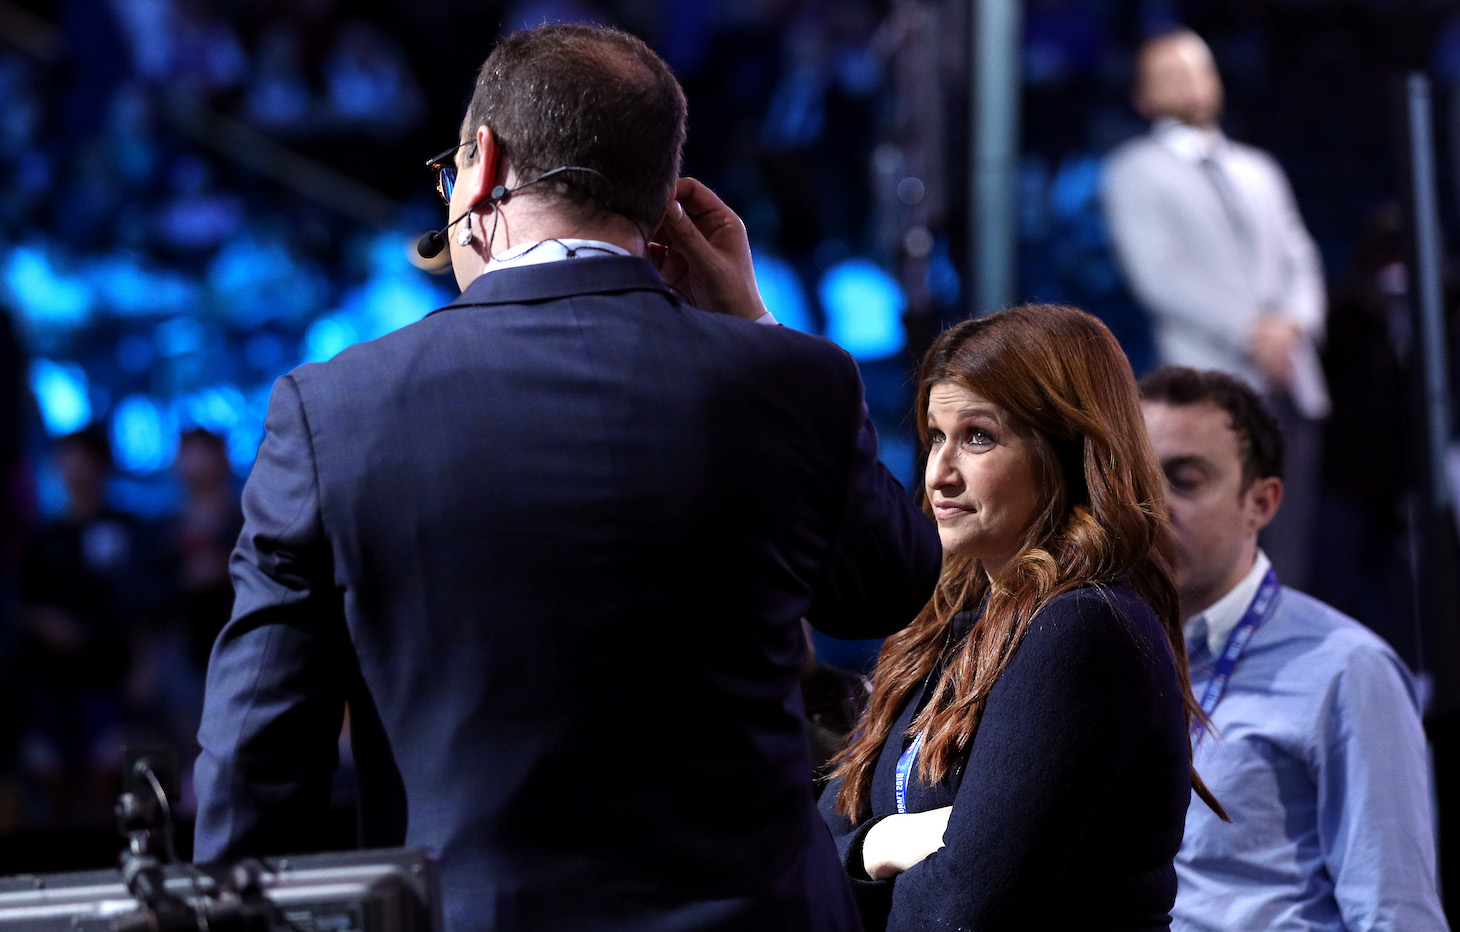 NEW YORK, NEW YORK - JUNE 20: Reporters Rachel Nichols and Adrian Wojnarowski speak before the start of the 2019 NBA Draft at the Barclays Center on June 20, 2019 in the Brooklyn borough of New York City. NOTE TO USER: User expressly acknowledges and agrees that, by downloading and or using this photograph, User is consenting to the terms and conditions of the Getty Images License Agreement. (Photo by Mike Lawrie/Getty Images)